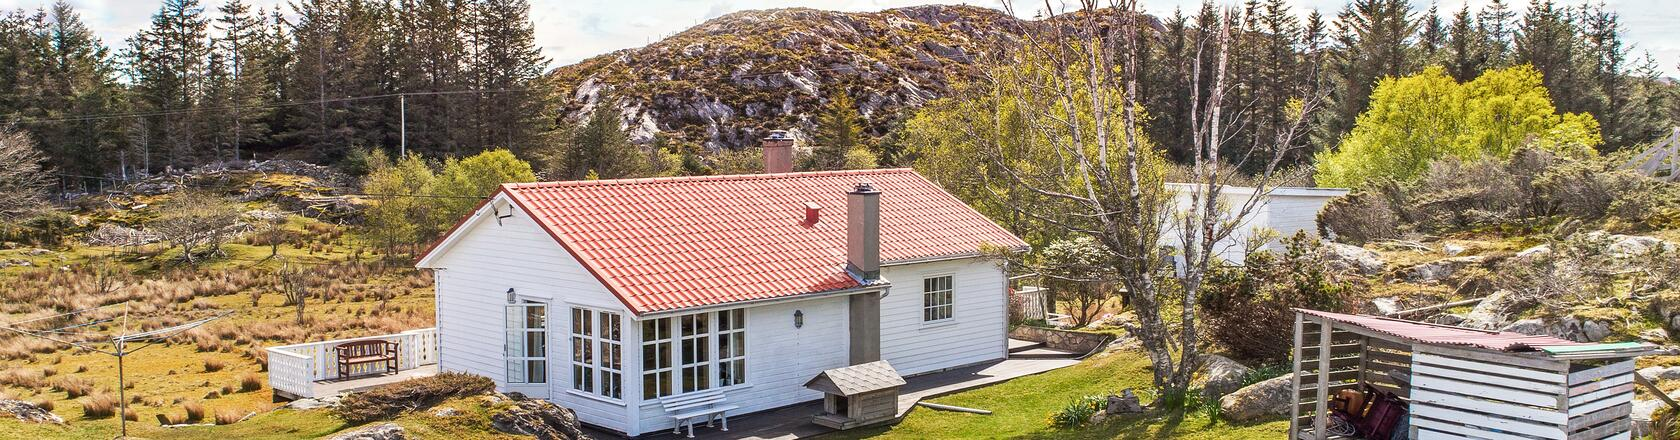 Lund in Norway - Rent a holiday home  with DanCenter